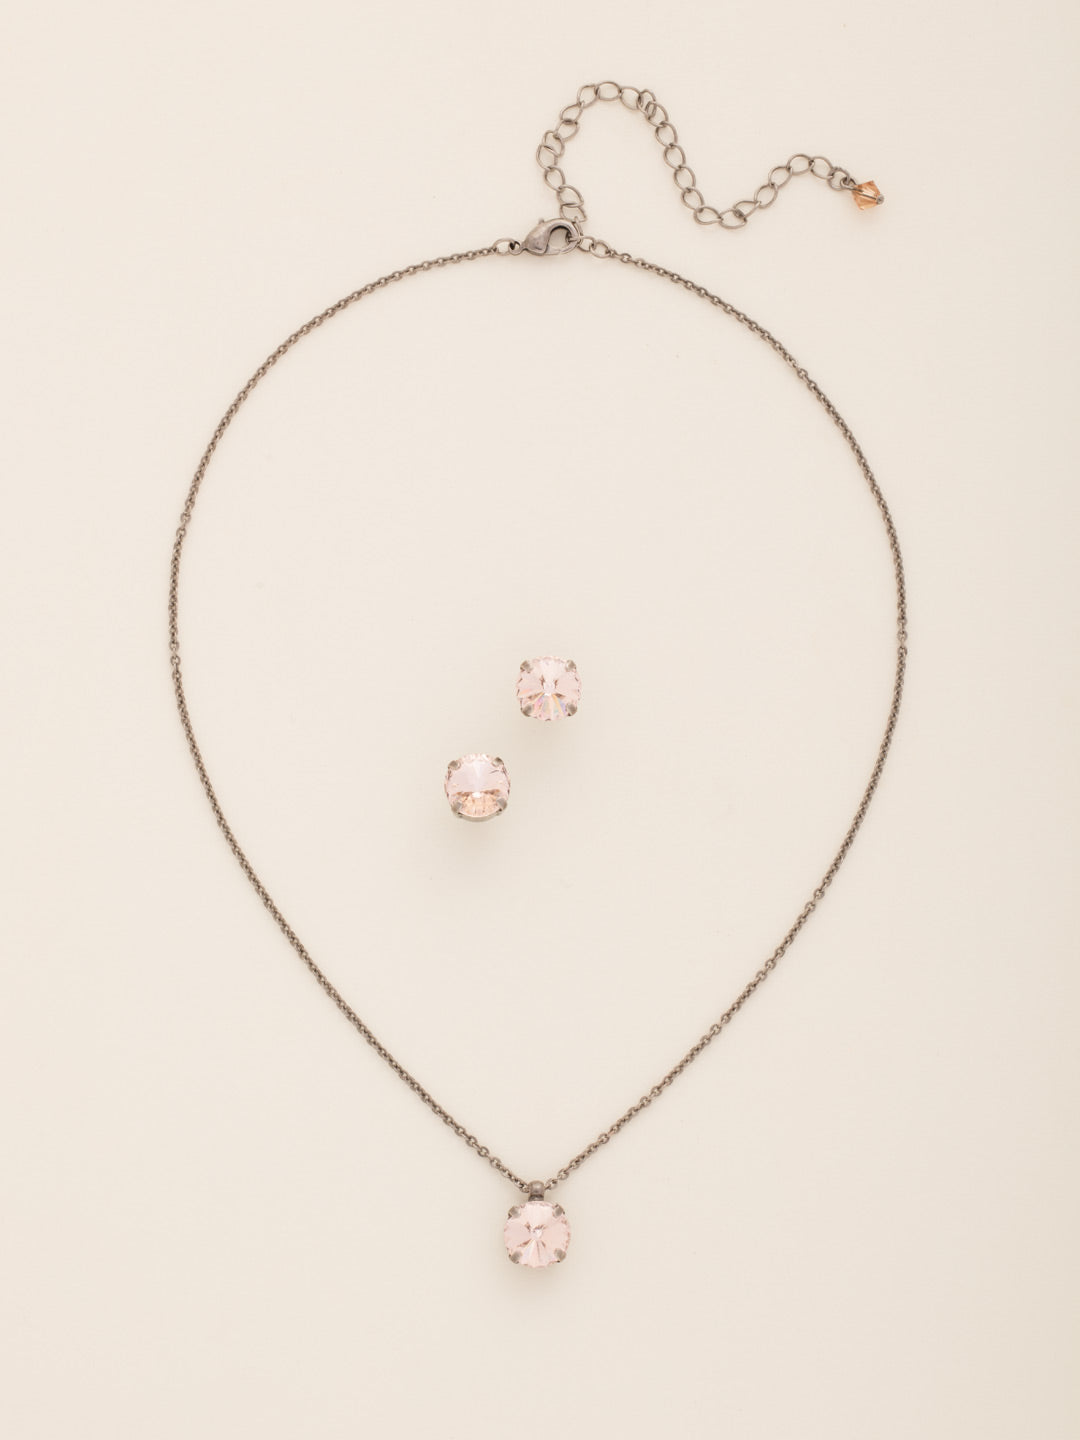 Classic Round Crystal Necklace and Earring Gift Set - GCT66ASSND